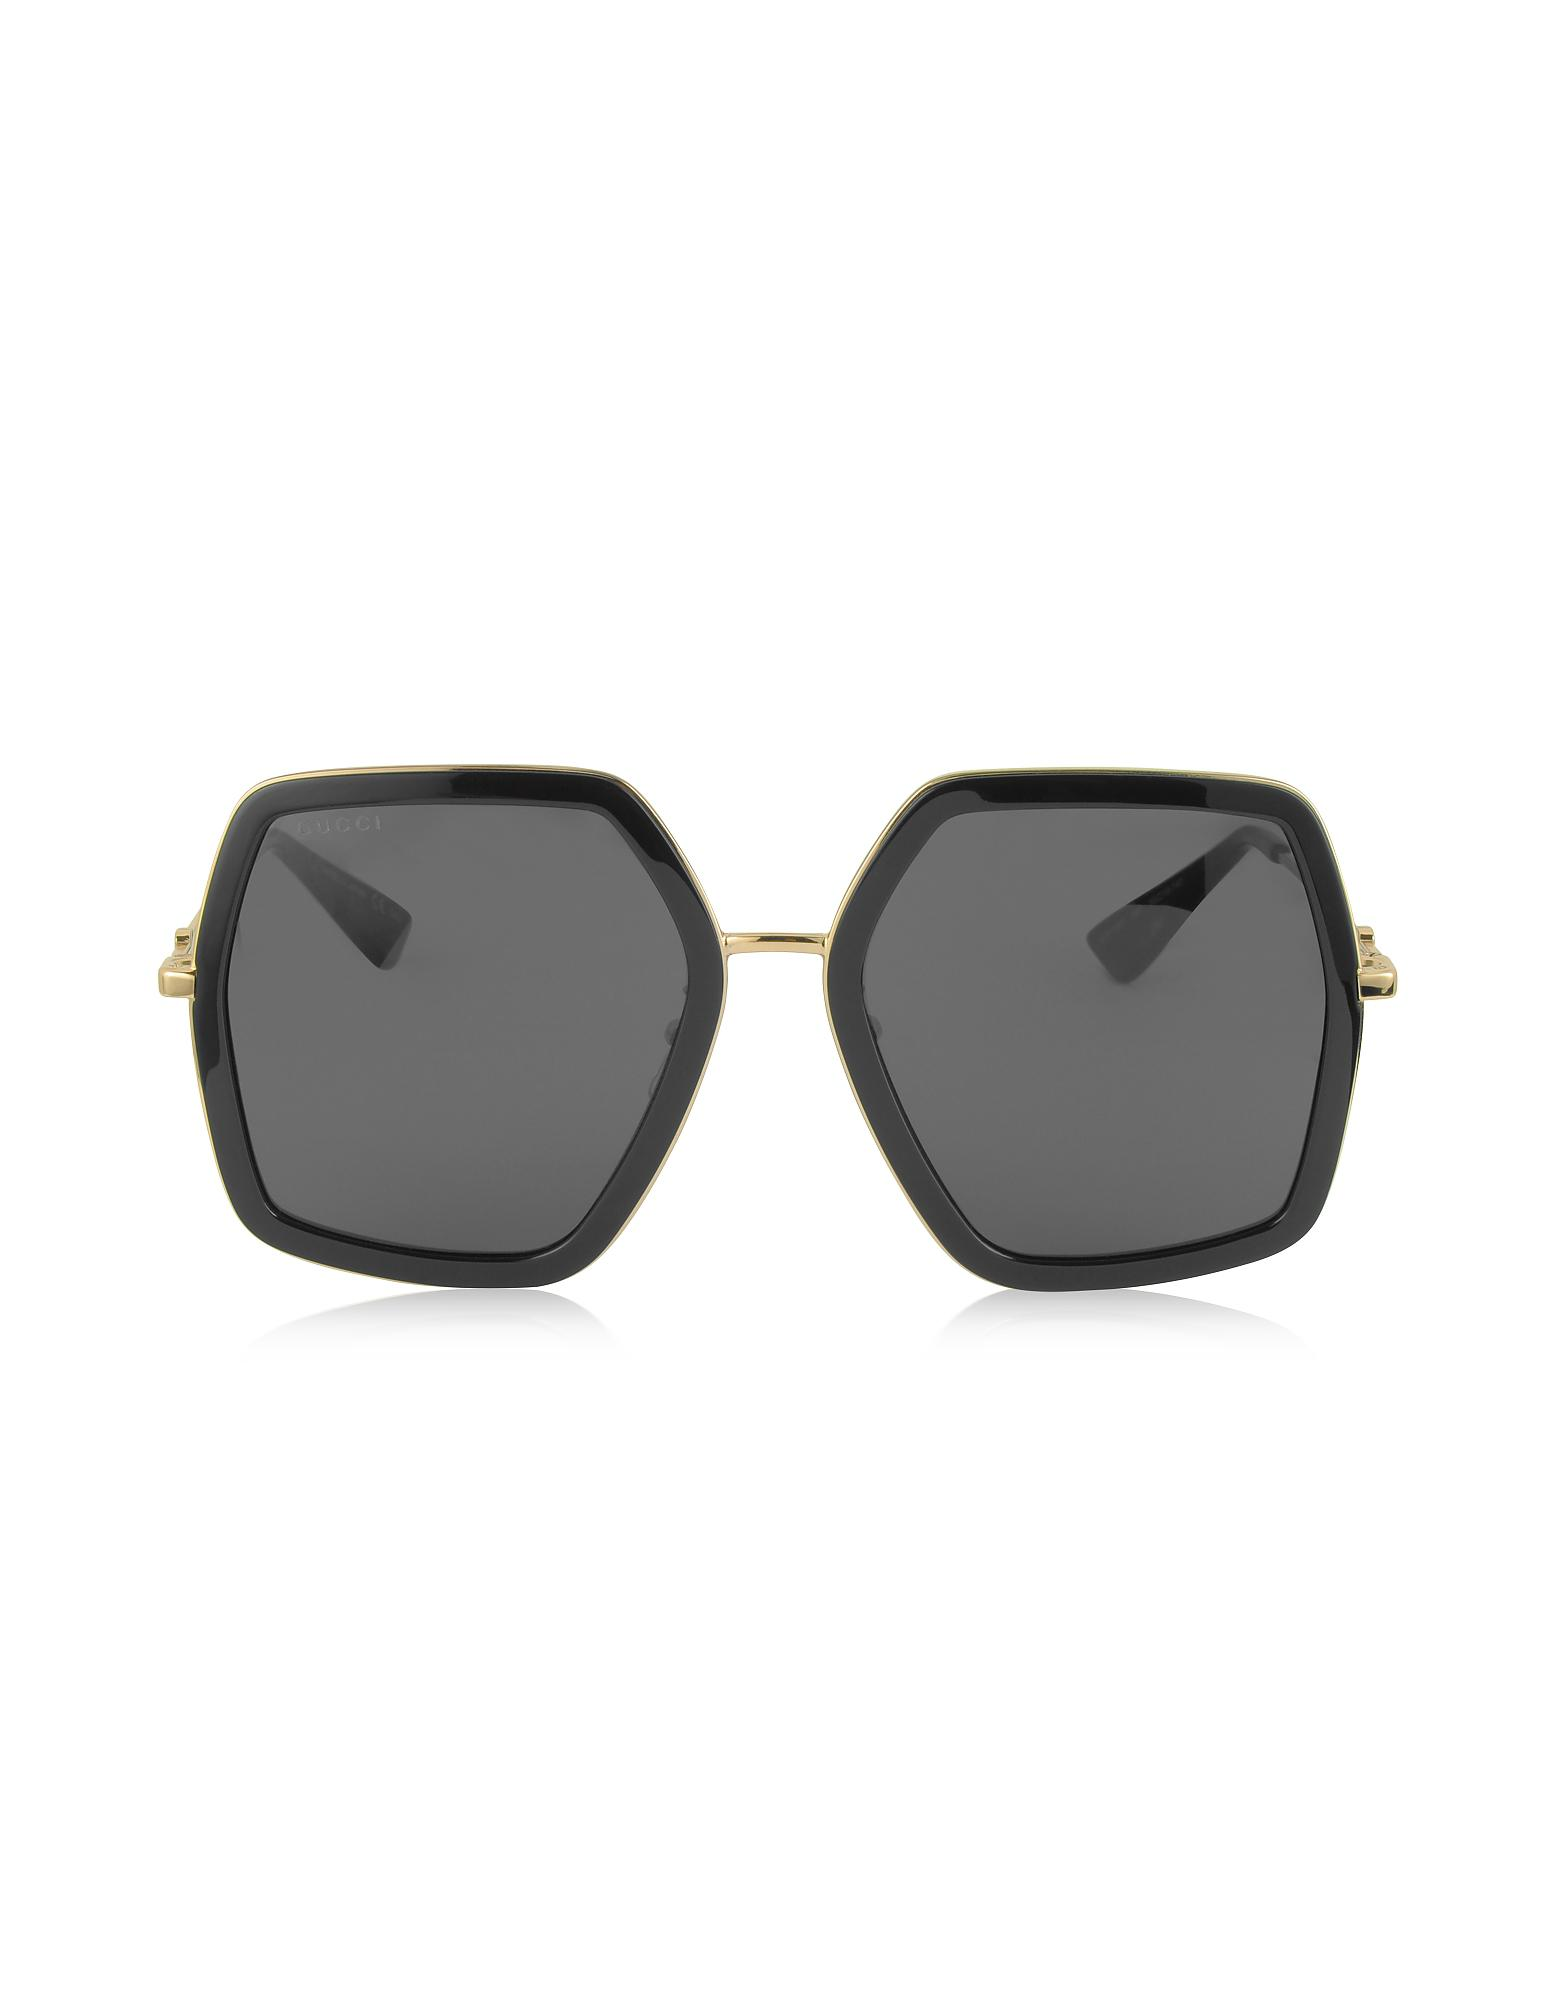 902ddc1ed3fdc Gucci. GG0106S 001 Black Acetate And Gold Metal Square Oversized Women s  Sunglasses